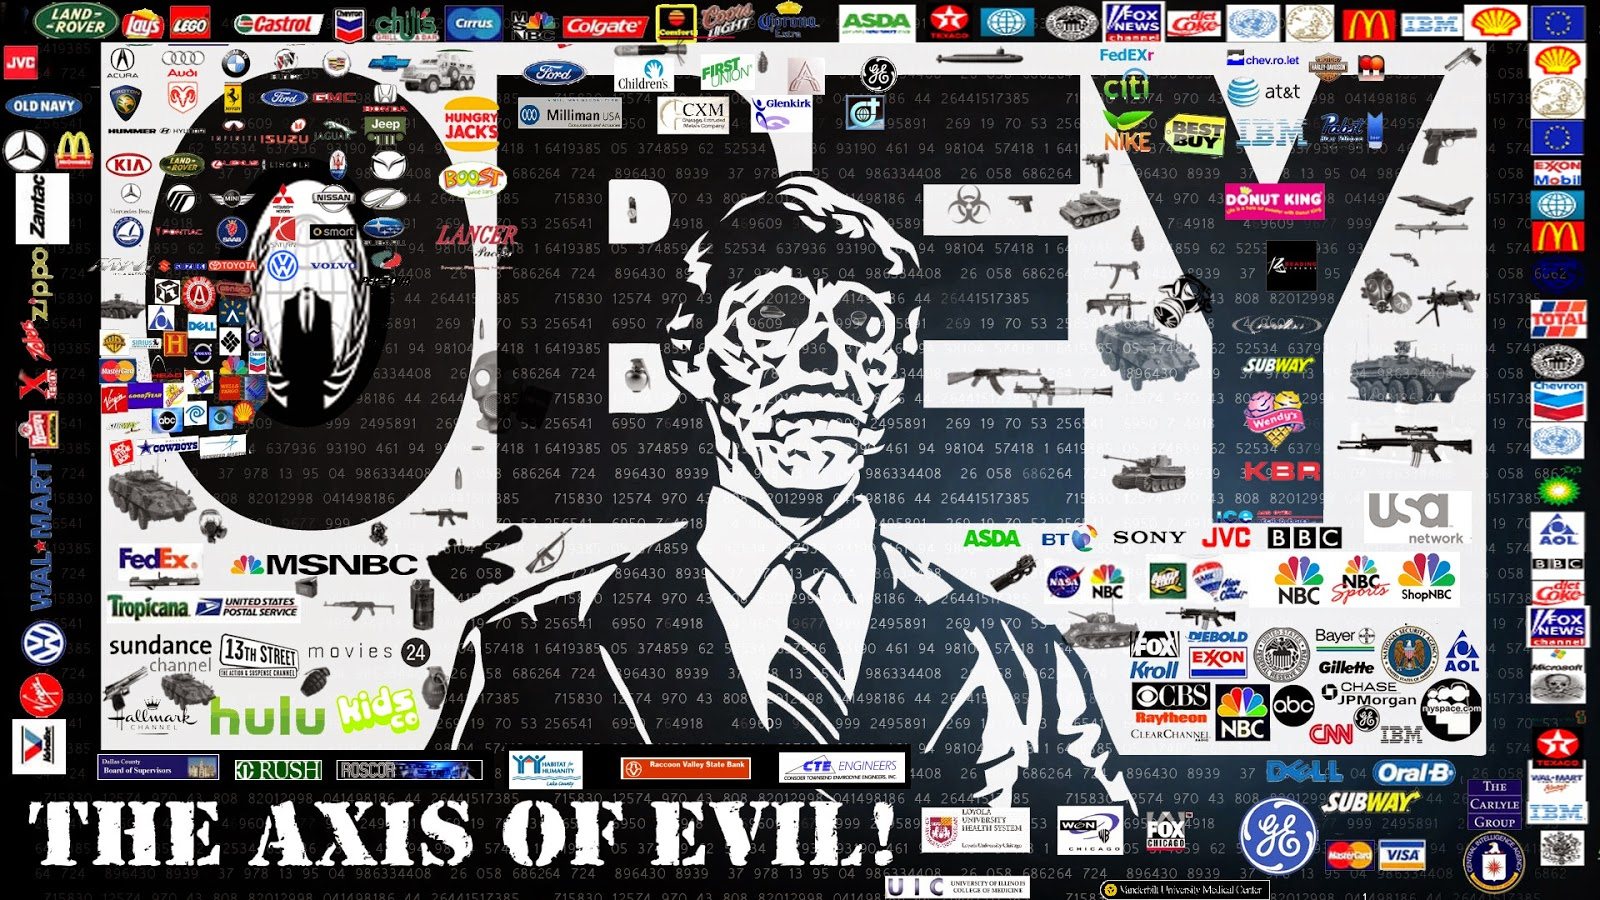 The Axis of Evil - Obey!